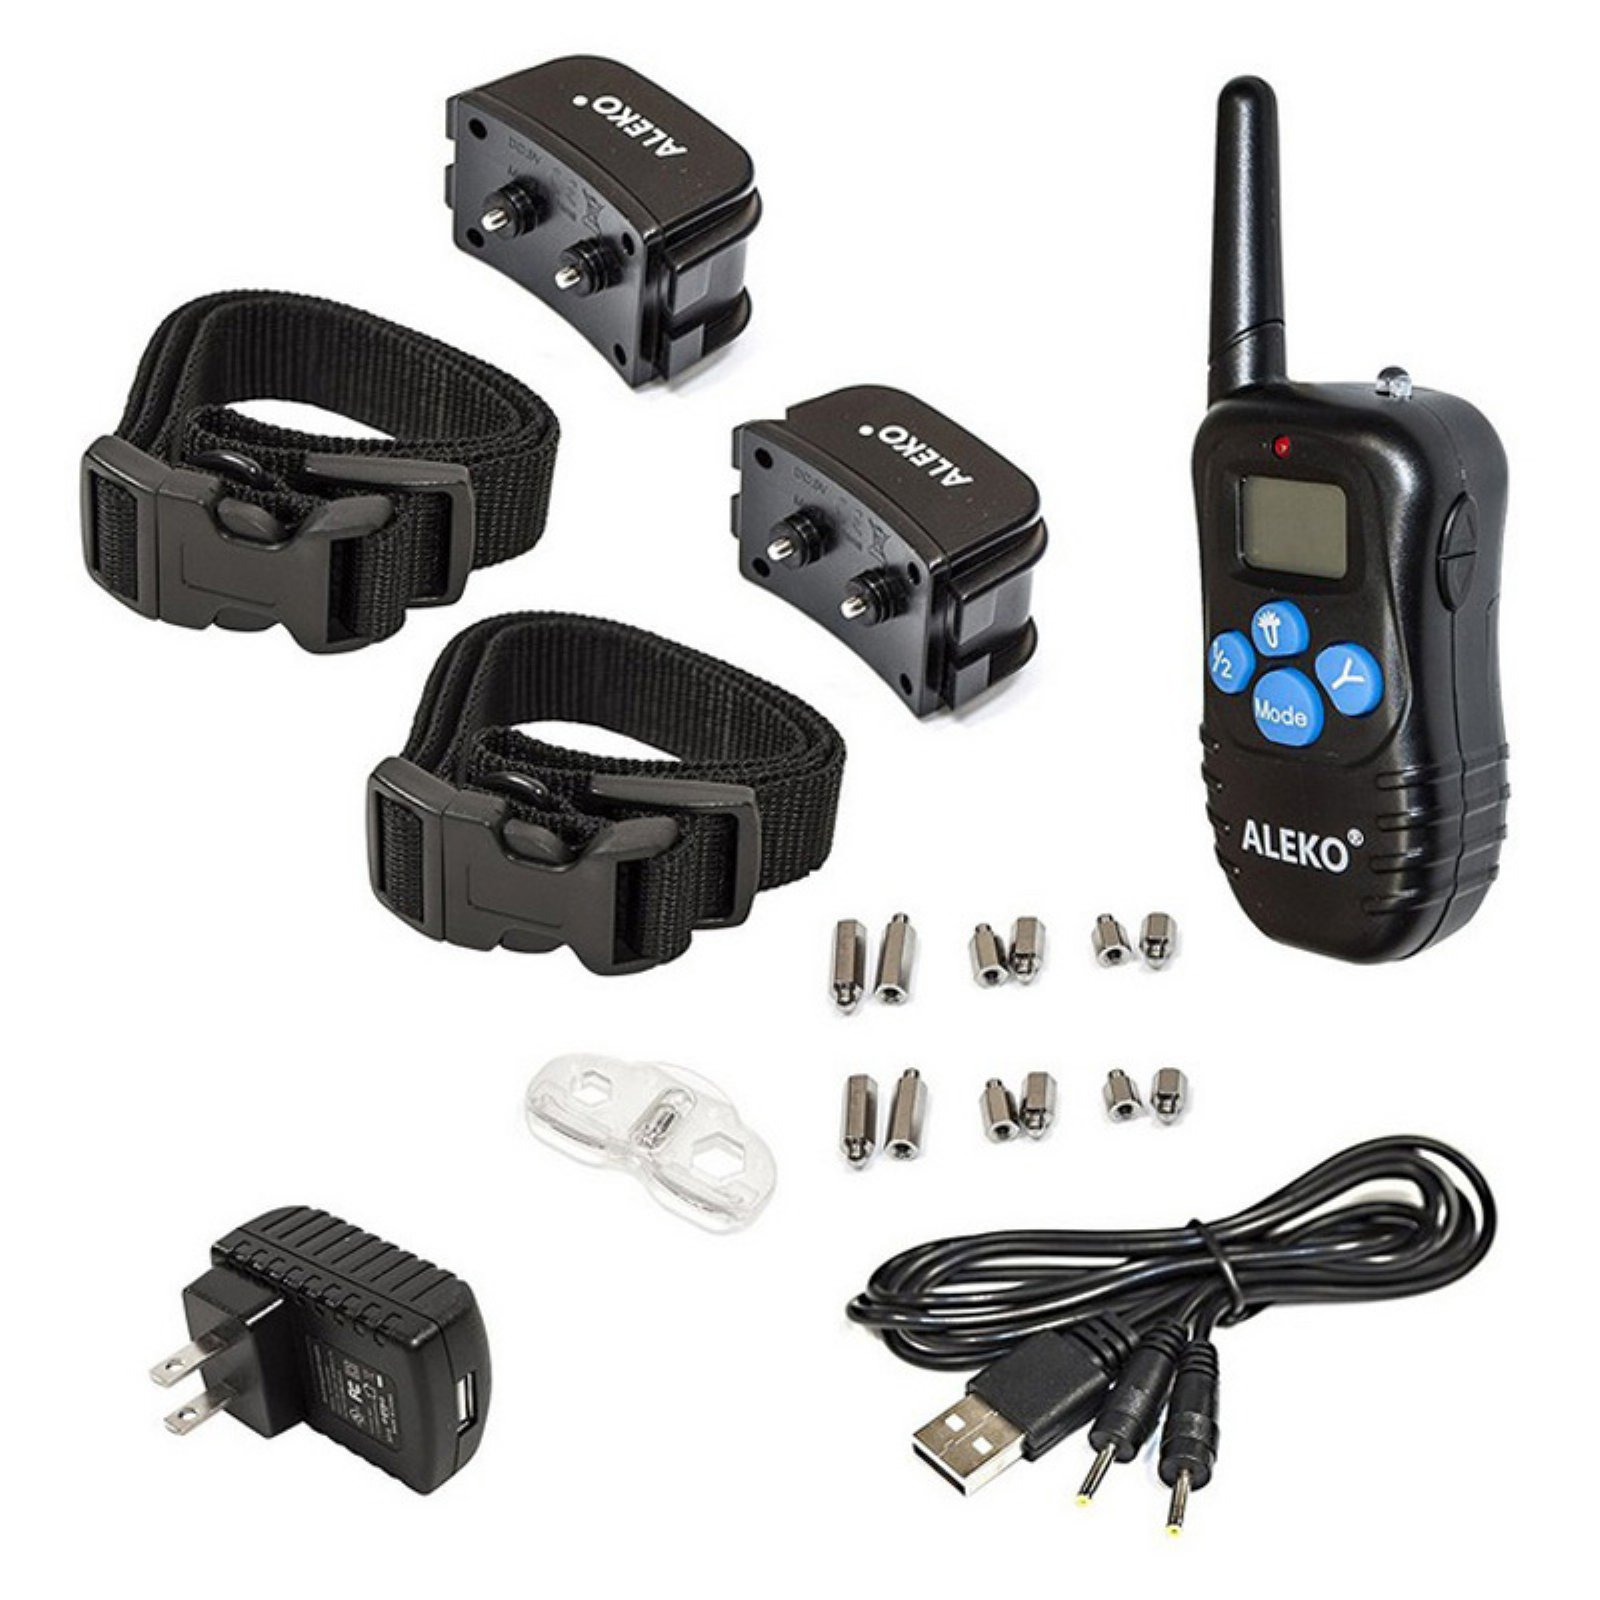 ALEKO TS-BC982D Remote Pet Training Collar for 2 Dogs Water-Resistant Dog Training Device